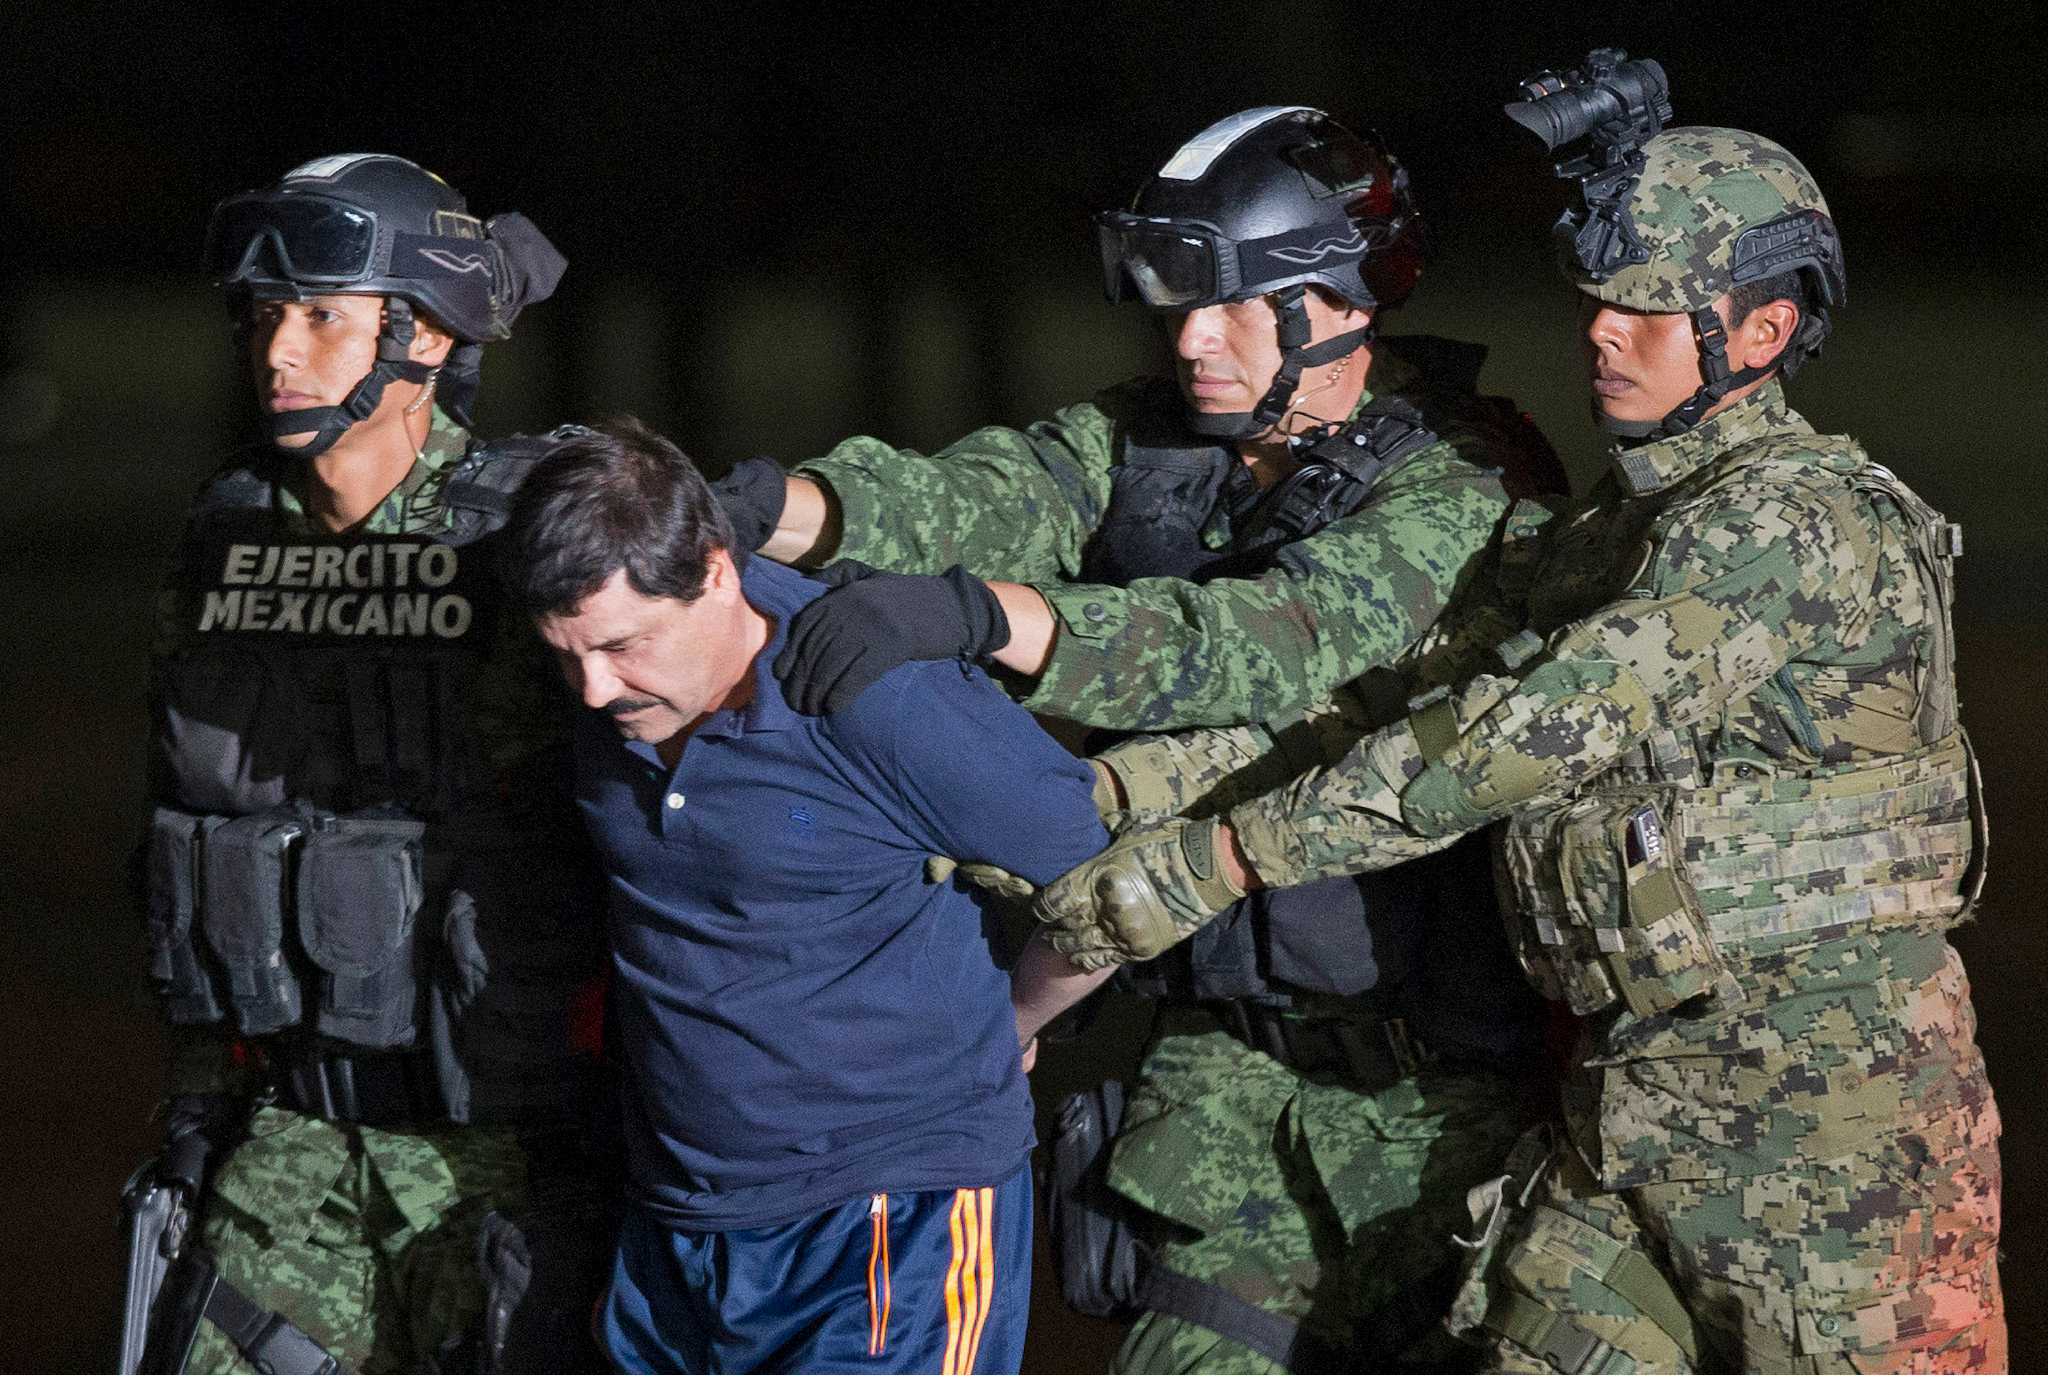 Judge presiding over 'El Chapo's' case shot, killed while jogging outside home